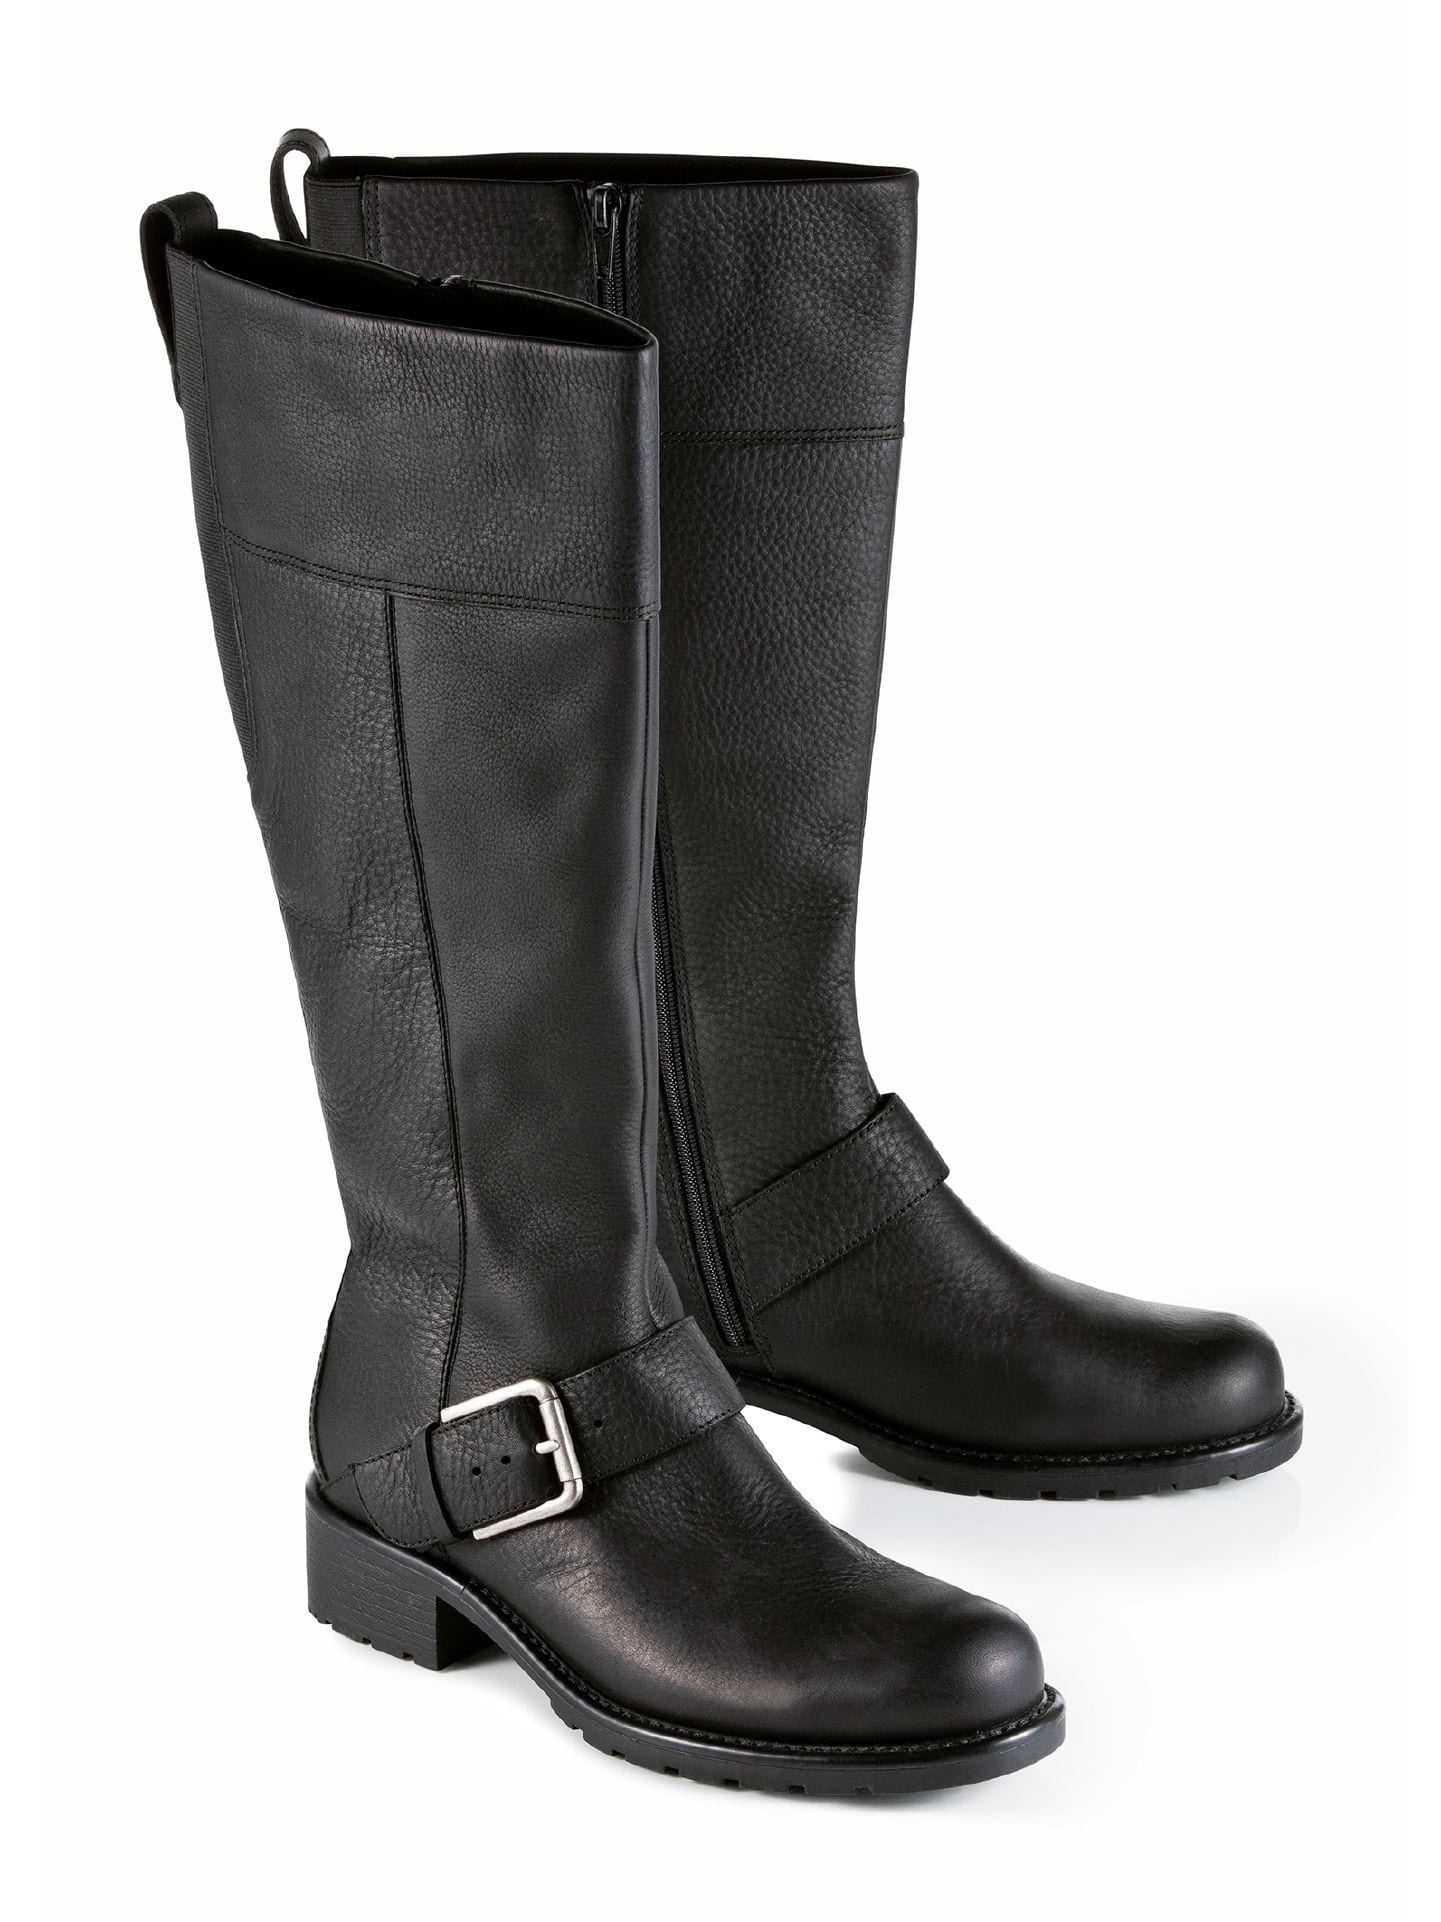 Image of Clarks Stiefel